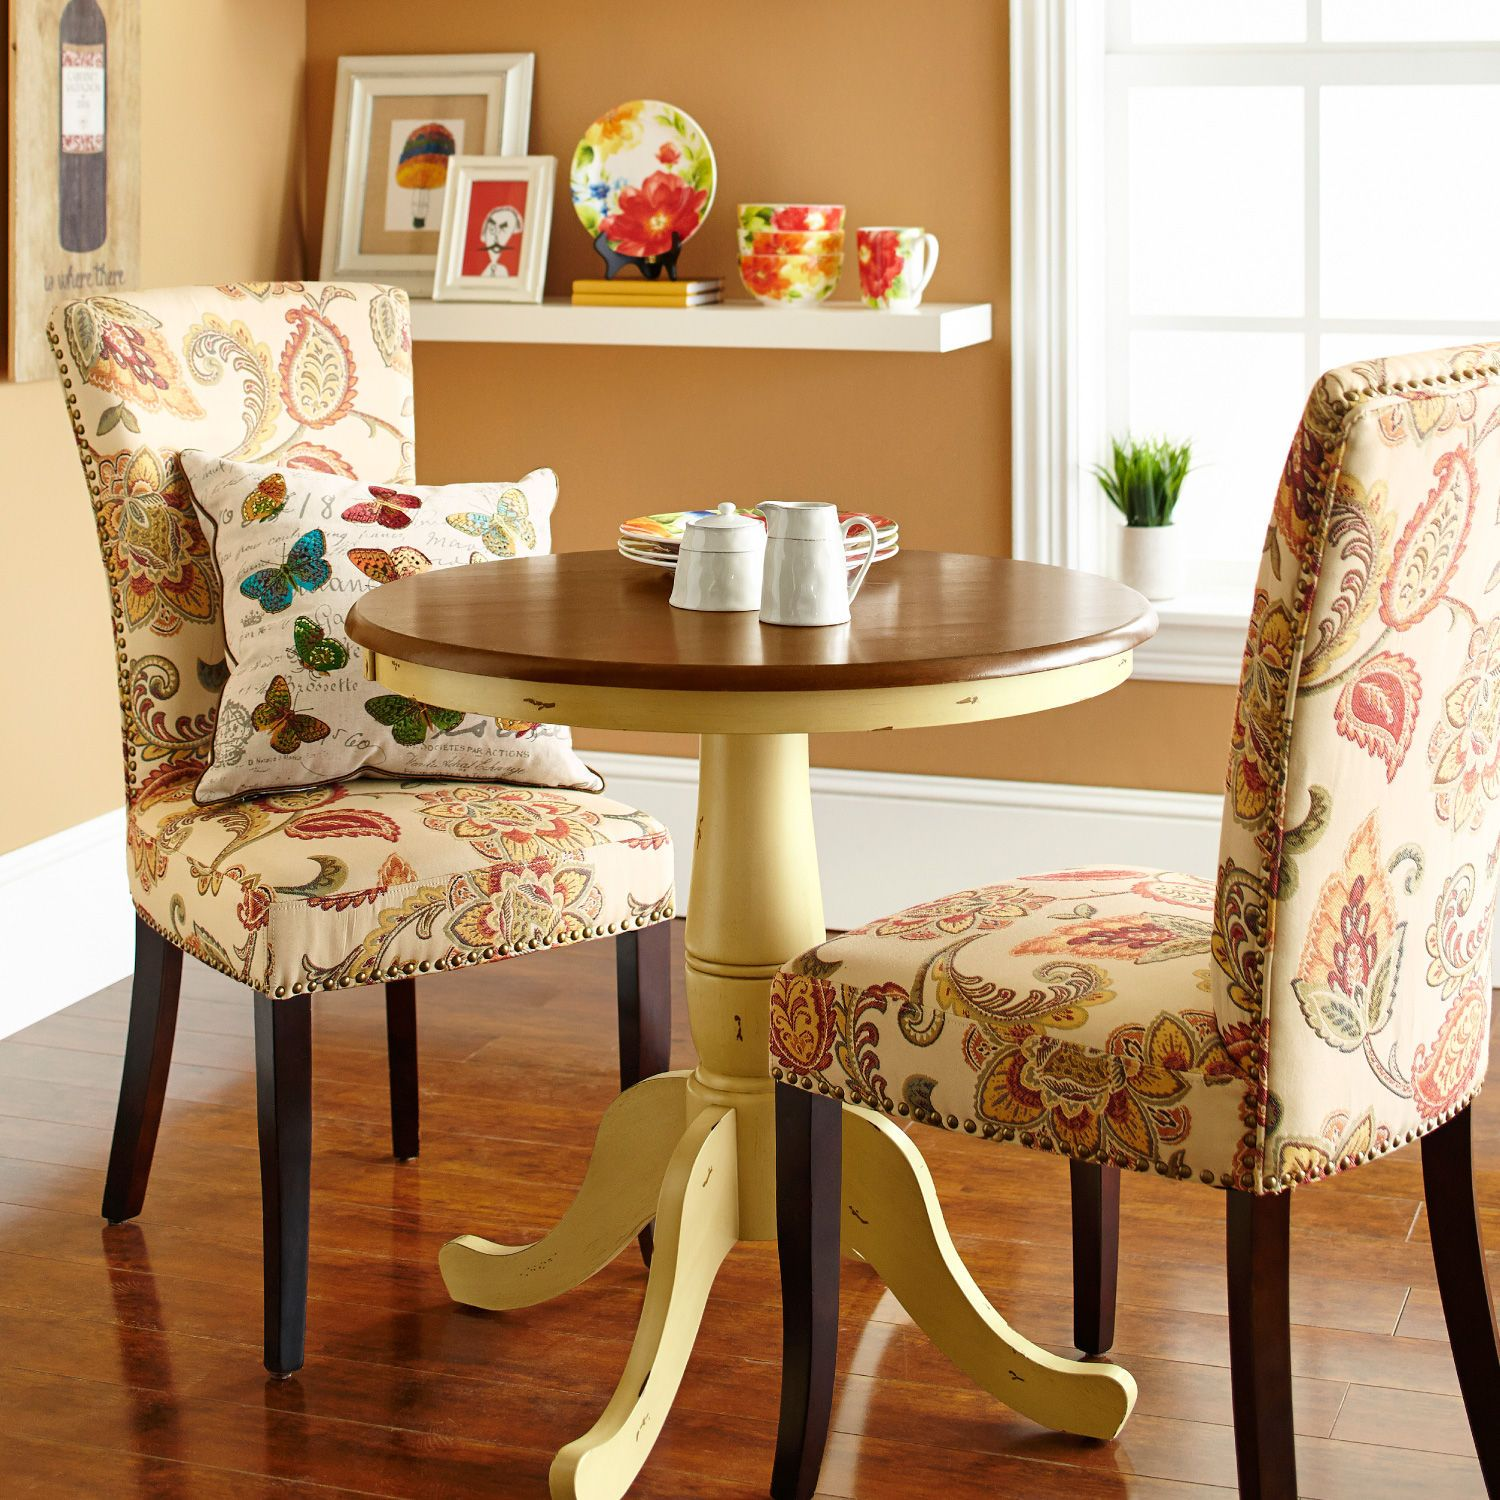 Apartment Kitchen Table And Chairs: My Mission Is To Find A Table And